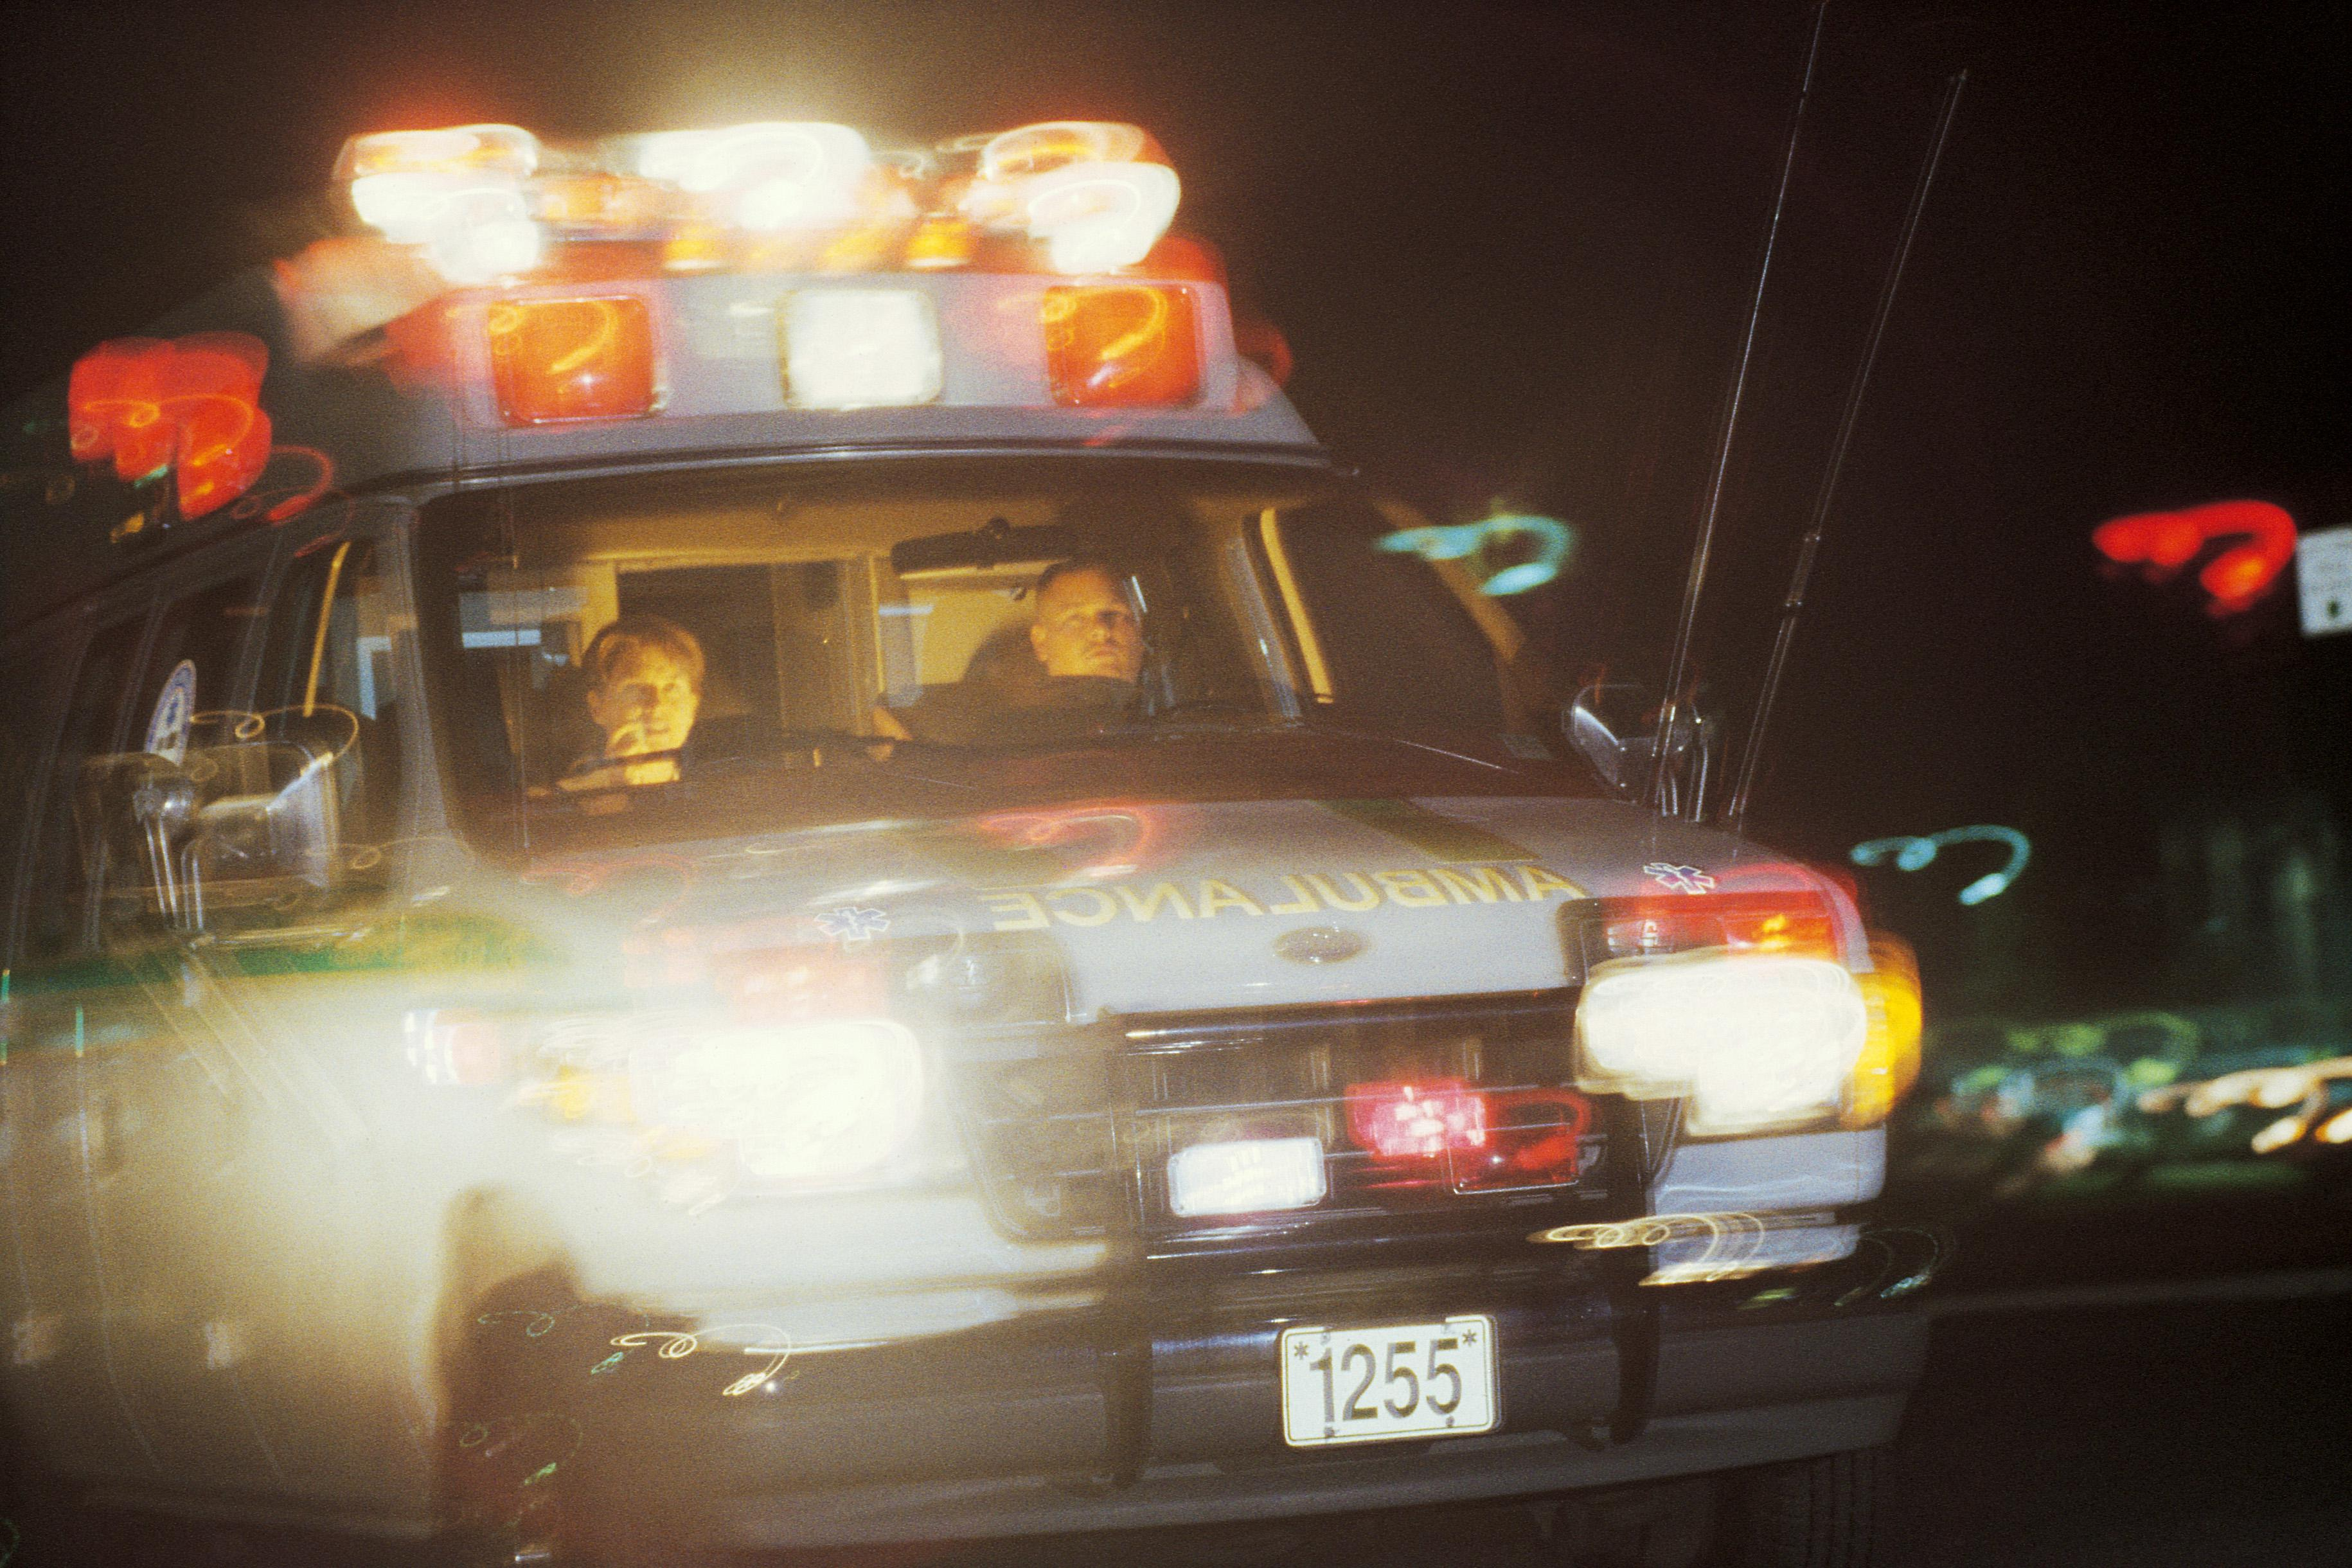 Ambulance with lights flashing